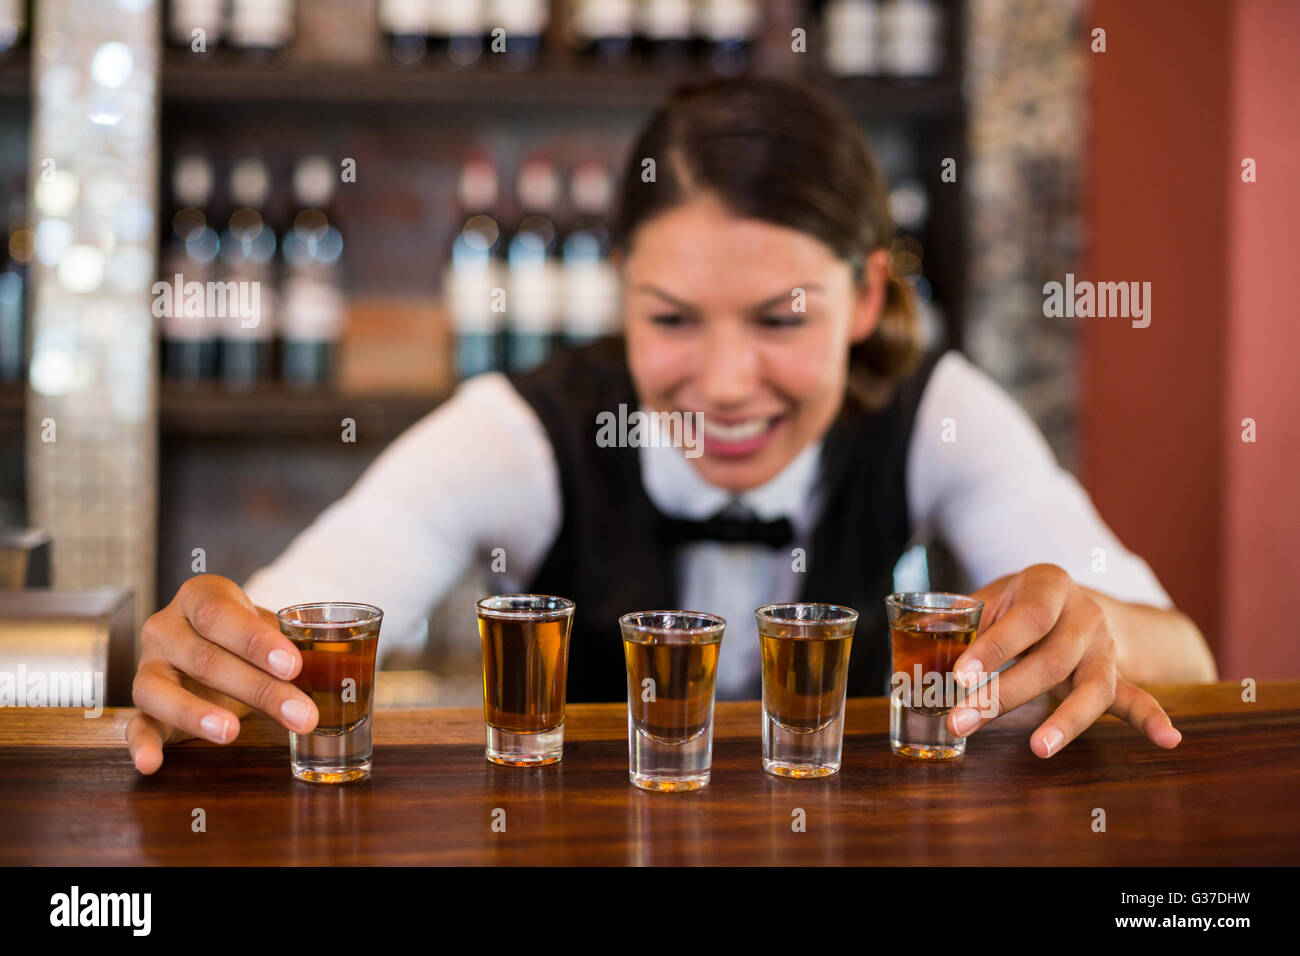 Bartender placing shot glasses on bar counter - Stock Image